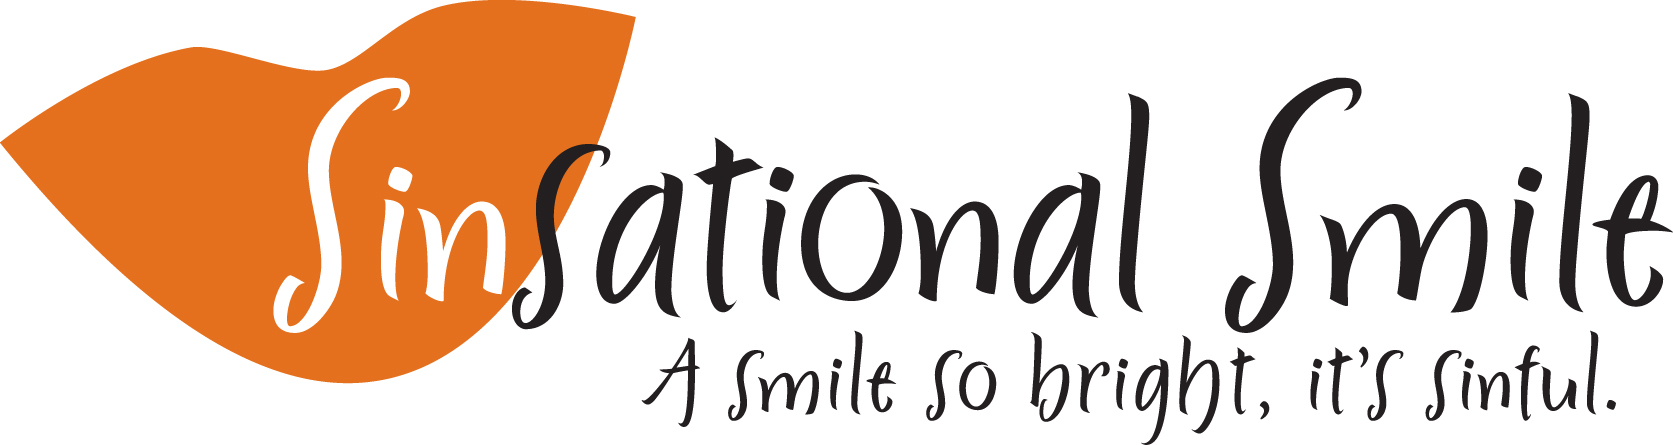 Sinsational Smile Logo